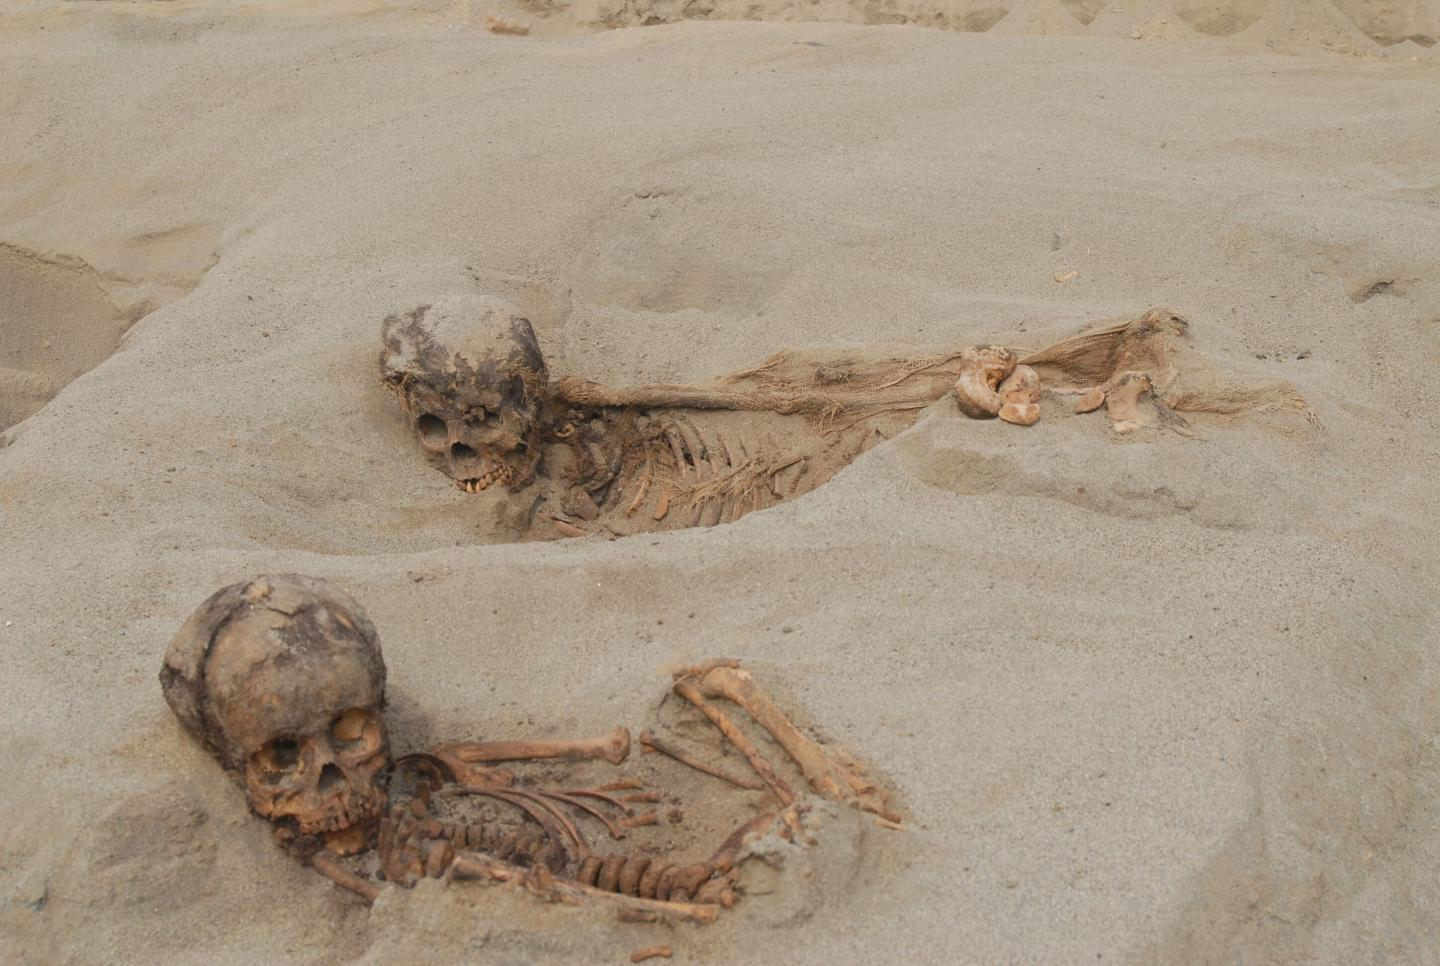 Hundreds of Children and Llamas Sacrificed in a Ritual Event in 15th Century Peru (1 of 2)